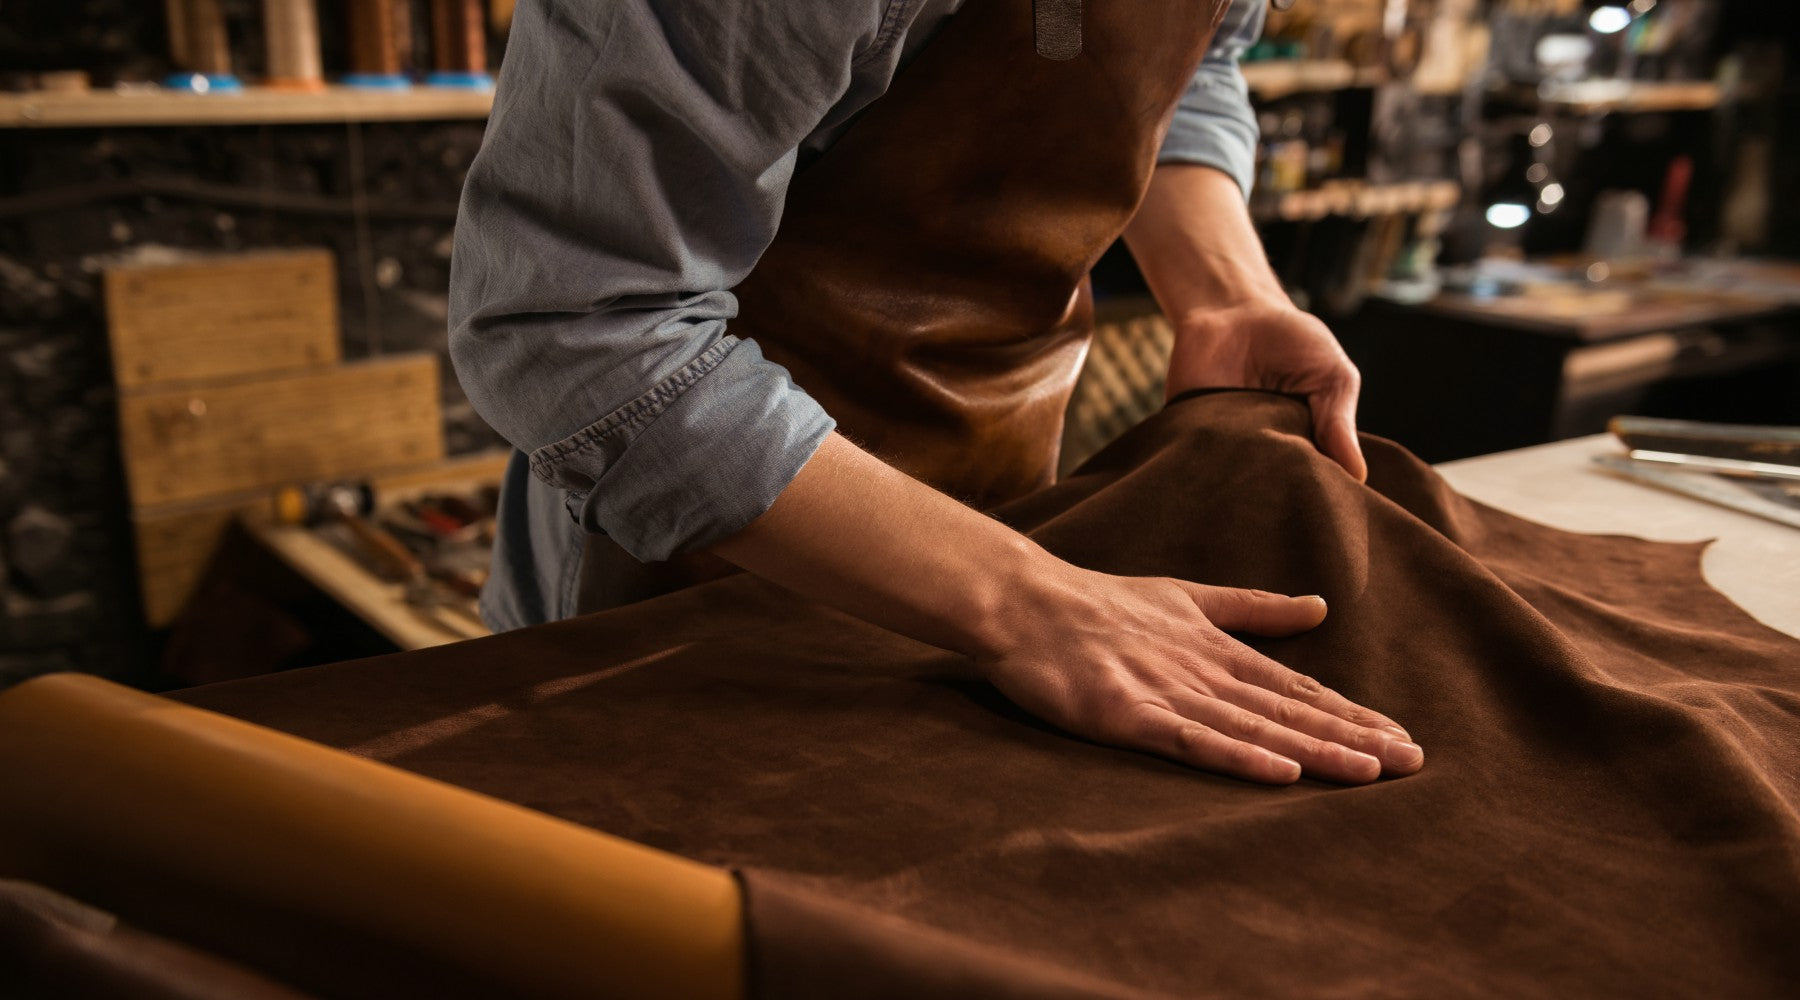 A persons caressing a leather hide